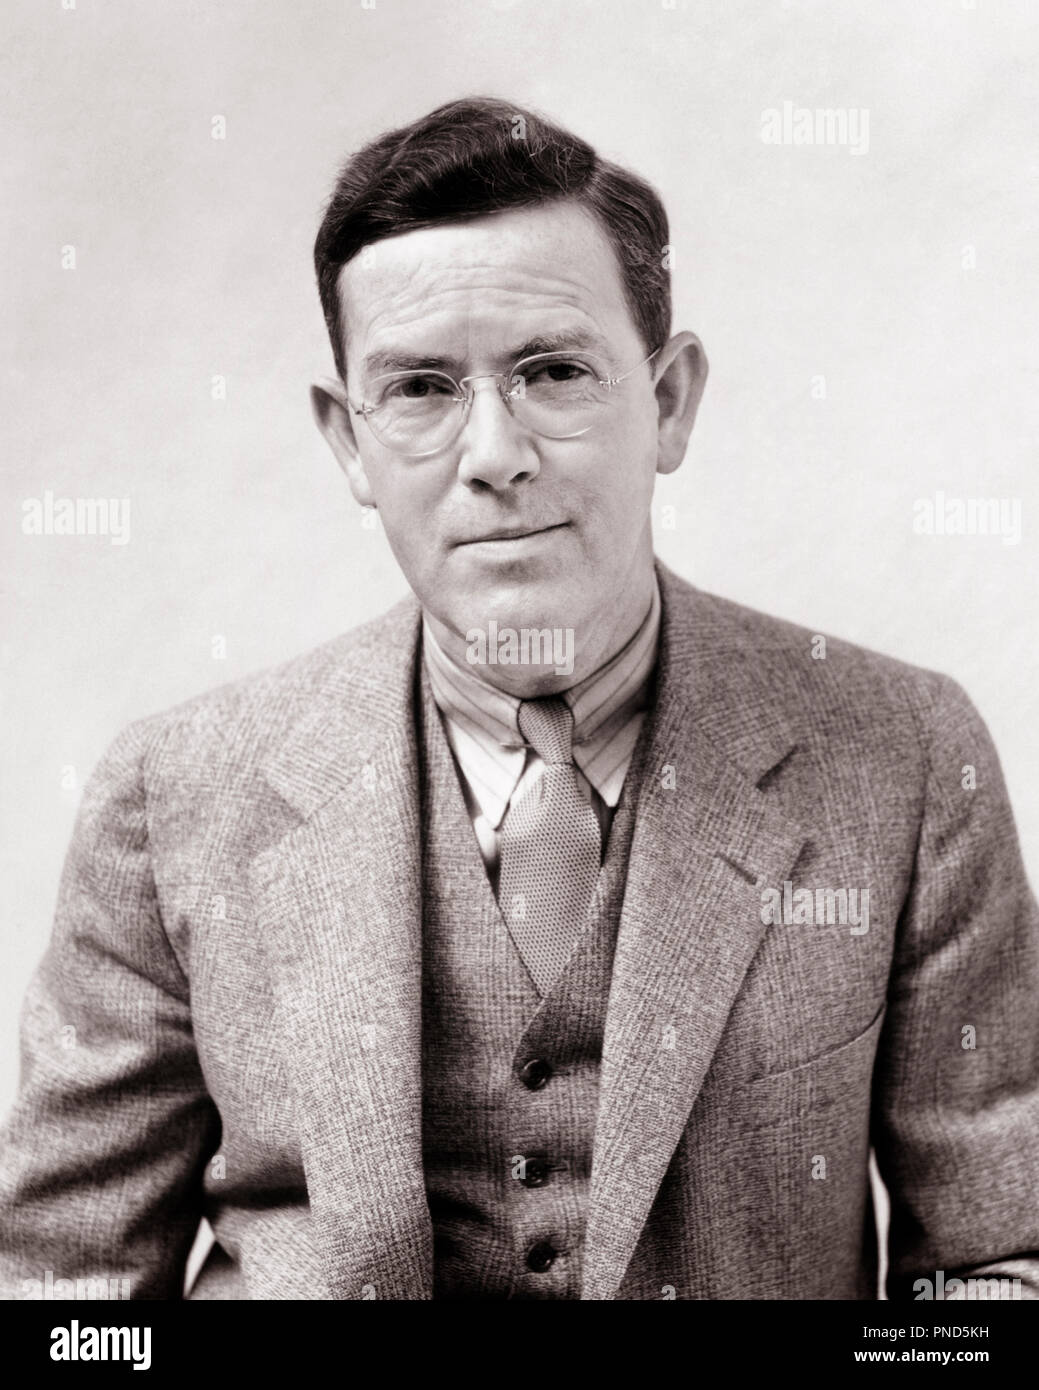 1930s PORTRAIT MAN PHOTOGRAPHER H. ARMSTRONG ROBERTS WEARING GLASSES SUIT VEST TIE LOOKING AT CAMERA - p5505 HAR001 HARS EYE CONTACT HAPPINESS STYLES SMILES THREE PIECE SUIT H ARMSTRONG ROBERTS JOYFUL STYLISH FASHIONS BLACK AND WHITE CAUCASIAN ETHNICITY HAR001 OLD FASHIONED - Stock Image